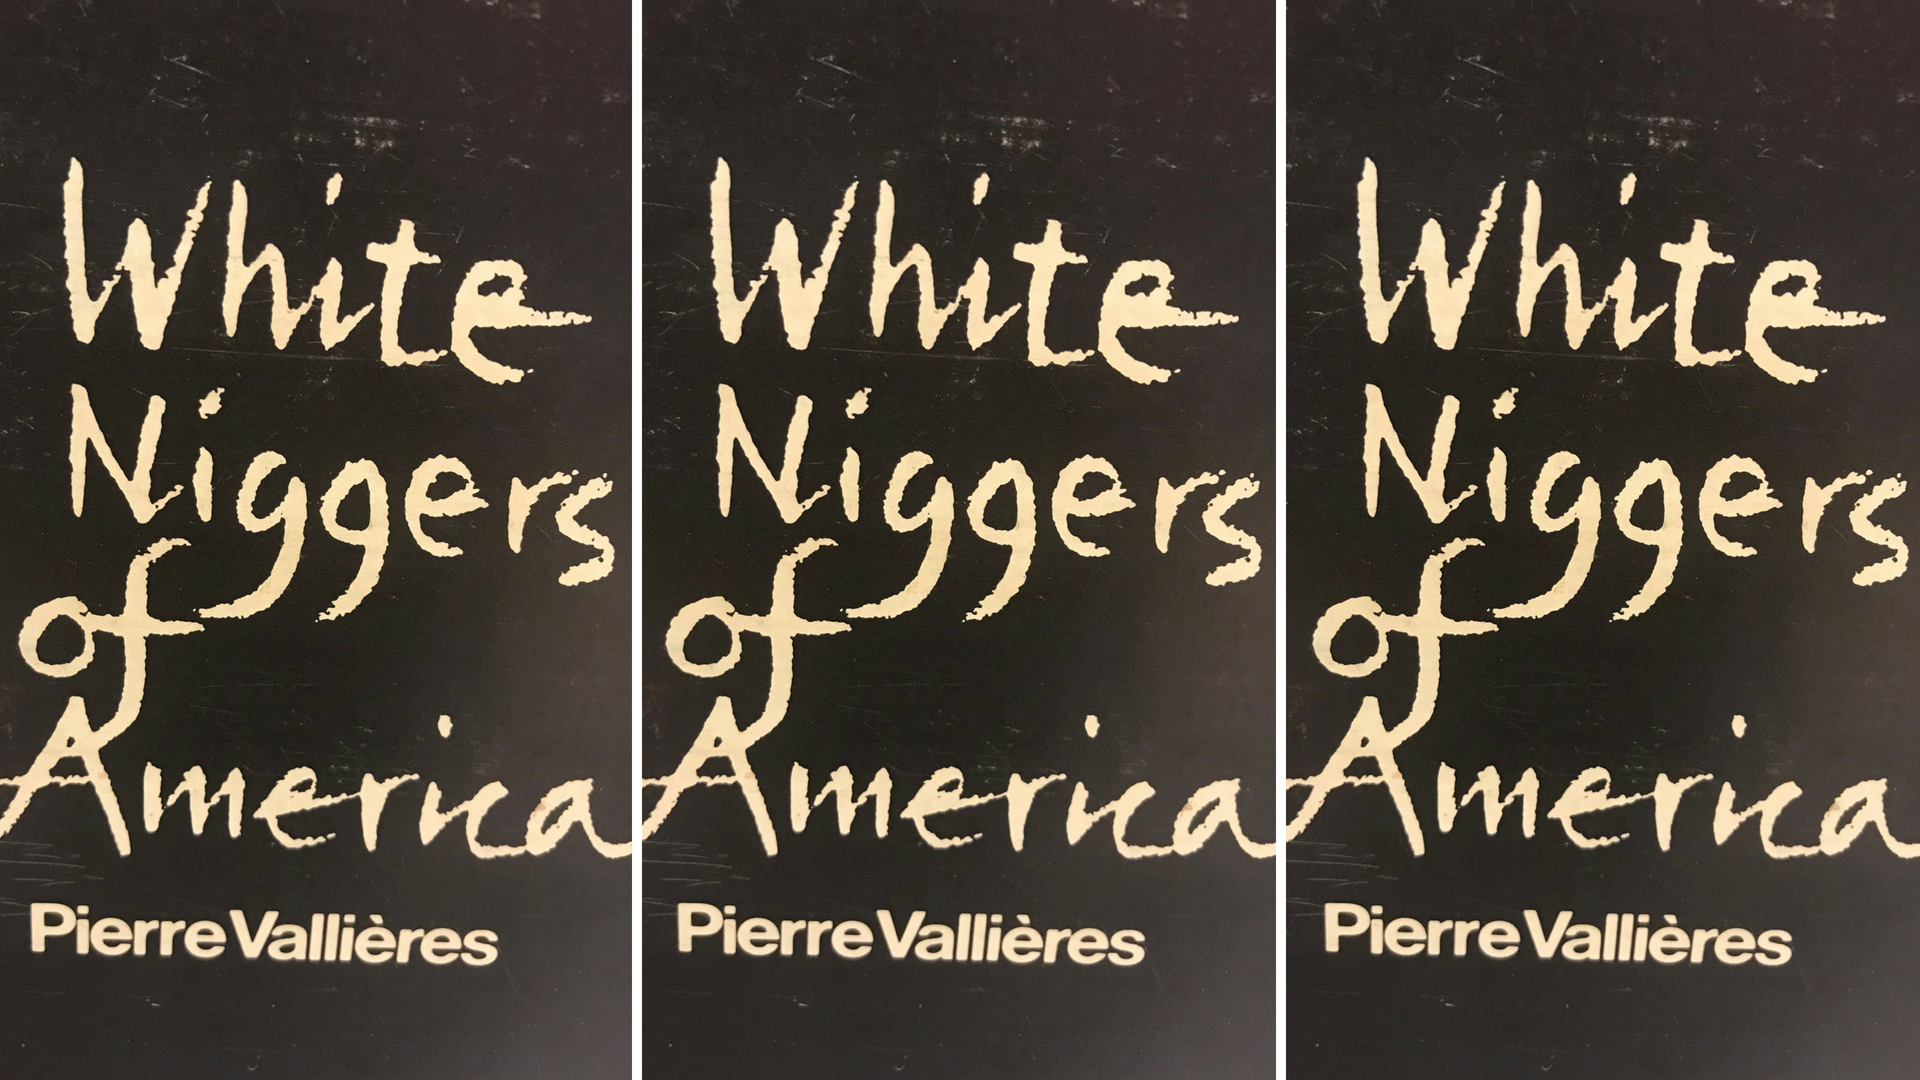 #📚Books to #read in #2018; 'White Niggers of America' by Pierre Vallieres #NoCriticsJustPolitics